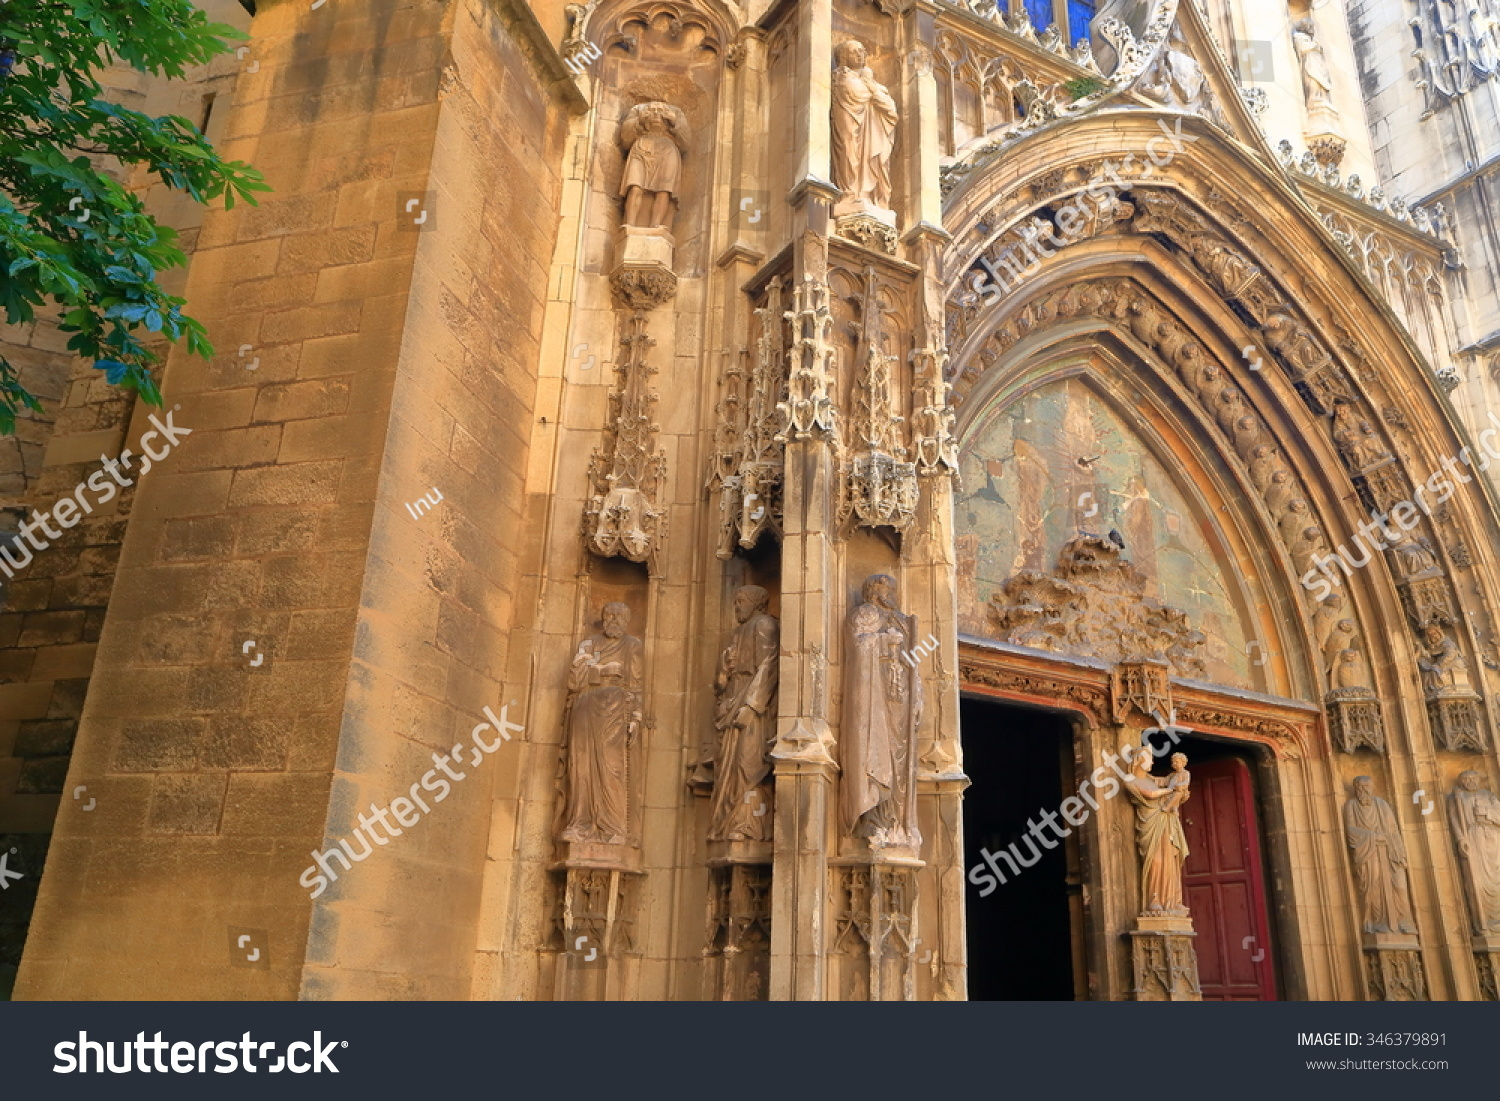 detail gothic architecture on facade church stock photo 346379891 shutterstock. Black Bedroom Furniture Sets. Home Design Ideas